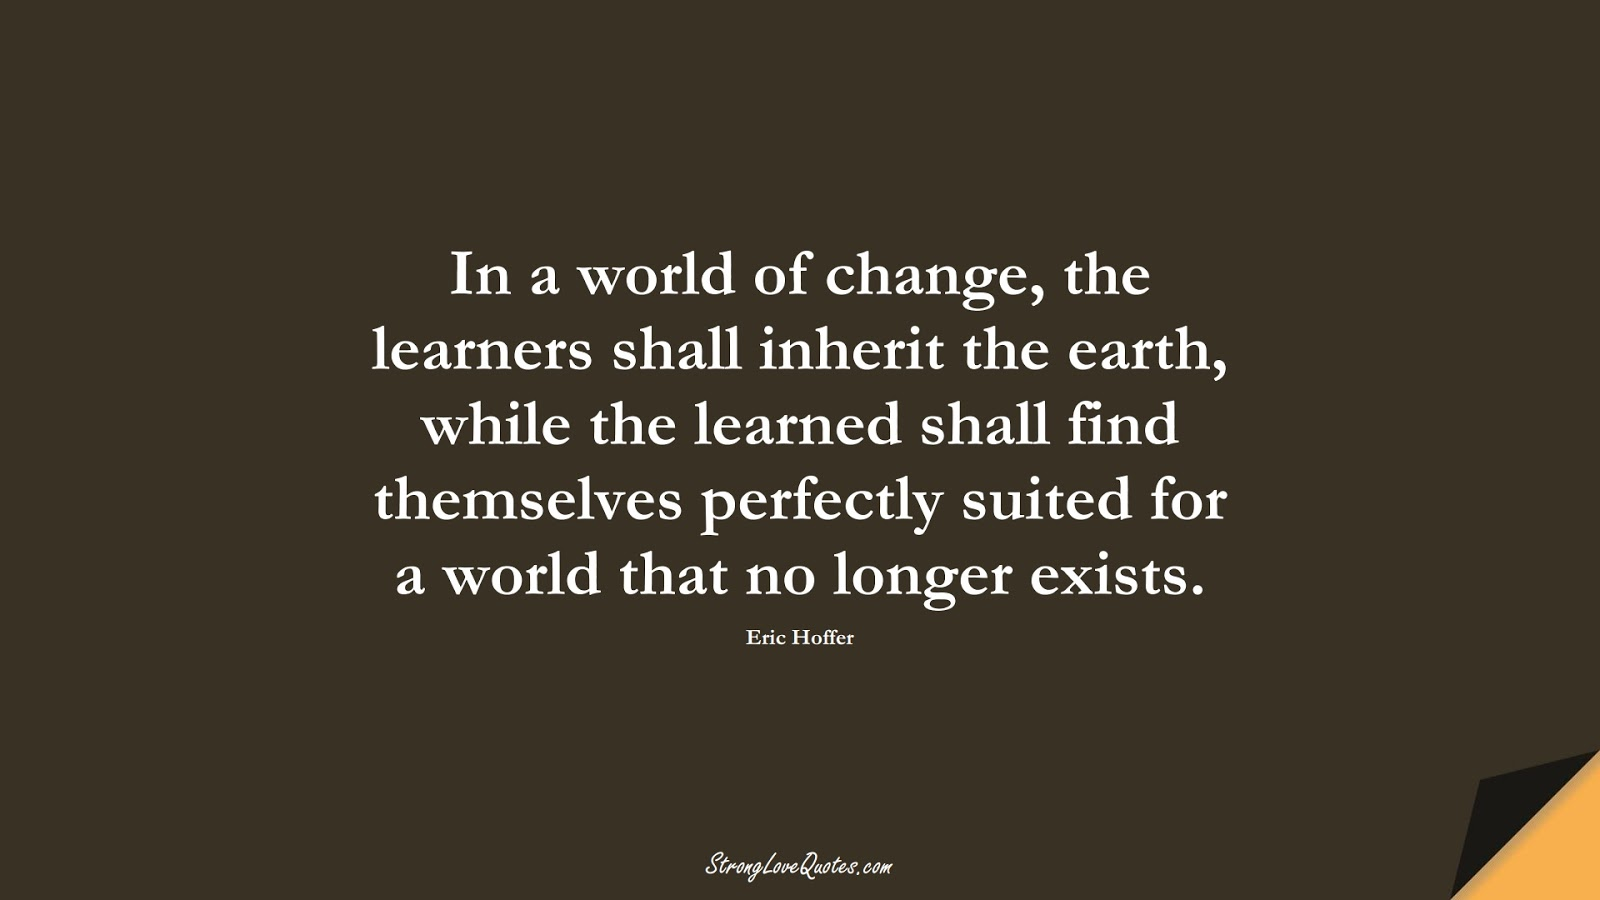 In a world of change, the learners shall inherit the earth, while the learned shall find themselves perfectly suited for a world that no longer exists. (Eric Hoffer);  #LearningQuotes